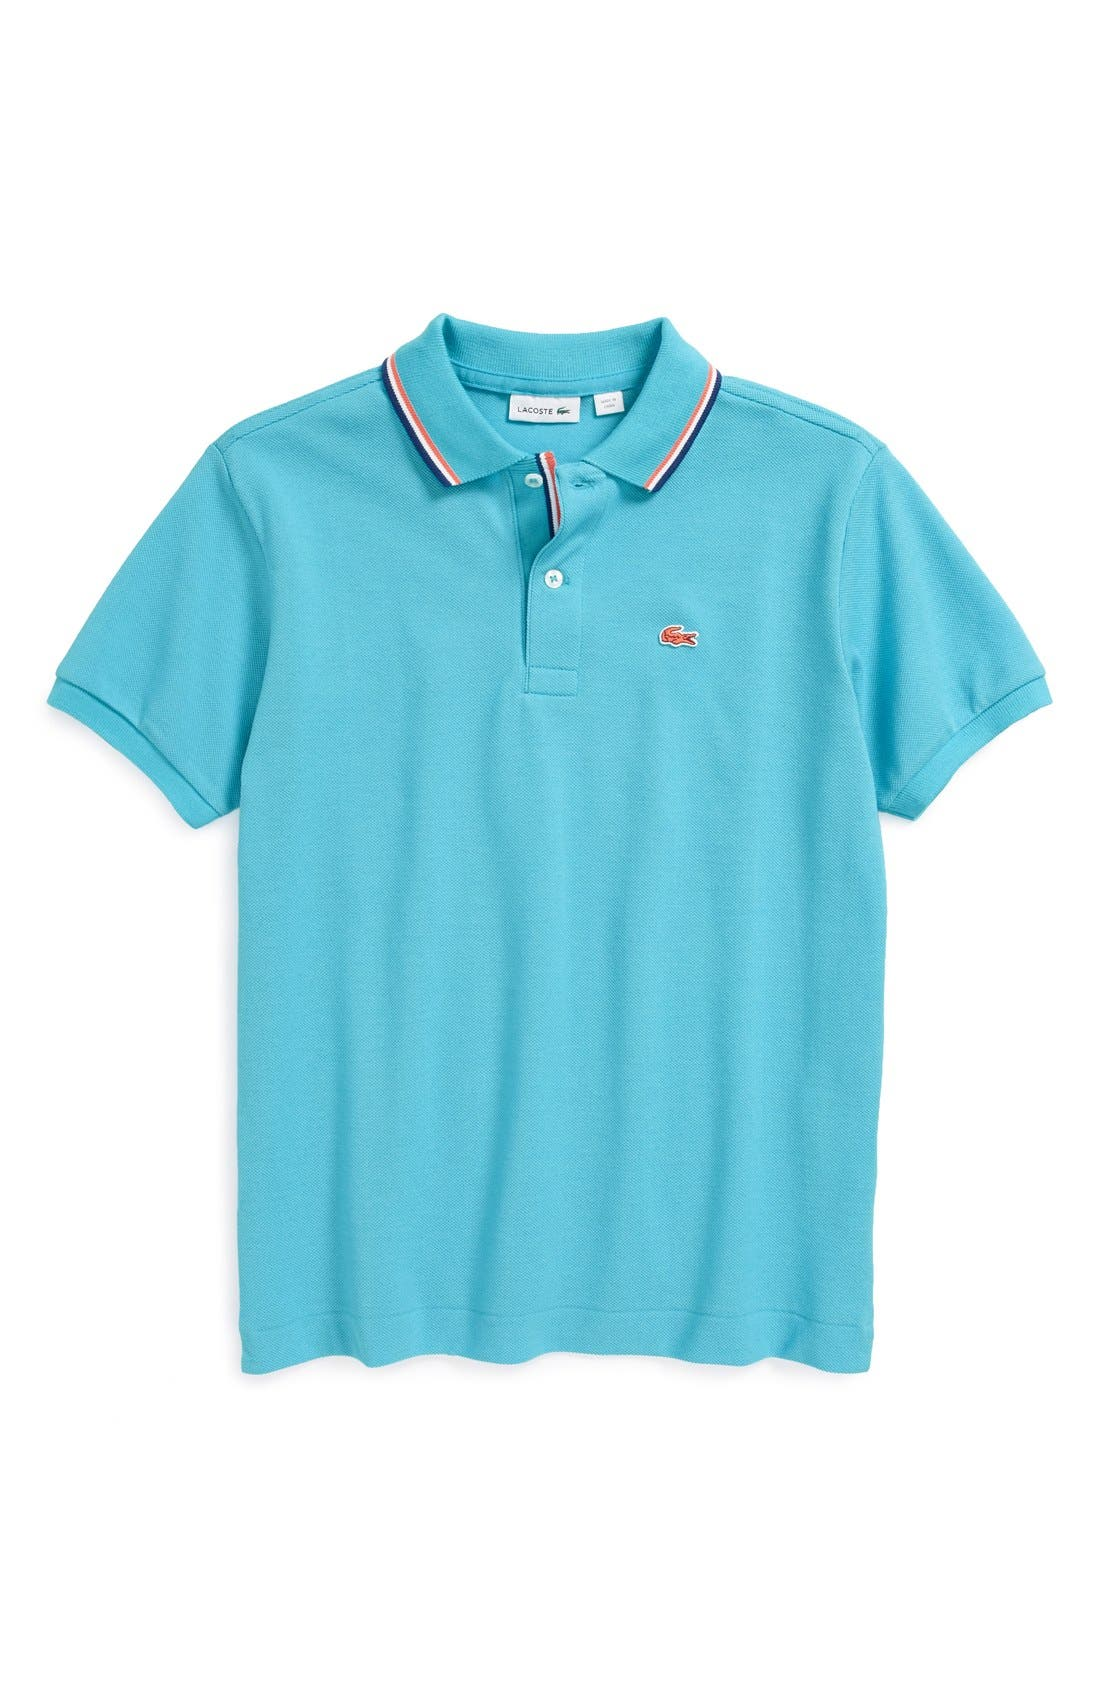 Main Image - Lacoste Tricolor Collar Piqué Polo (Little Boys & Big Boys)